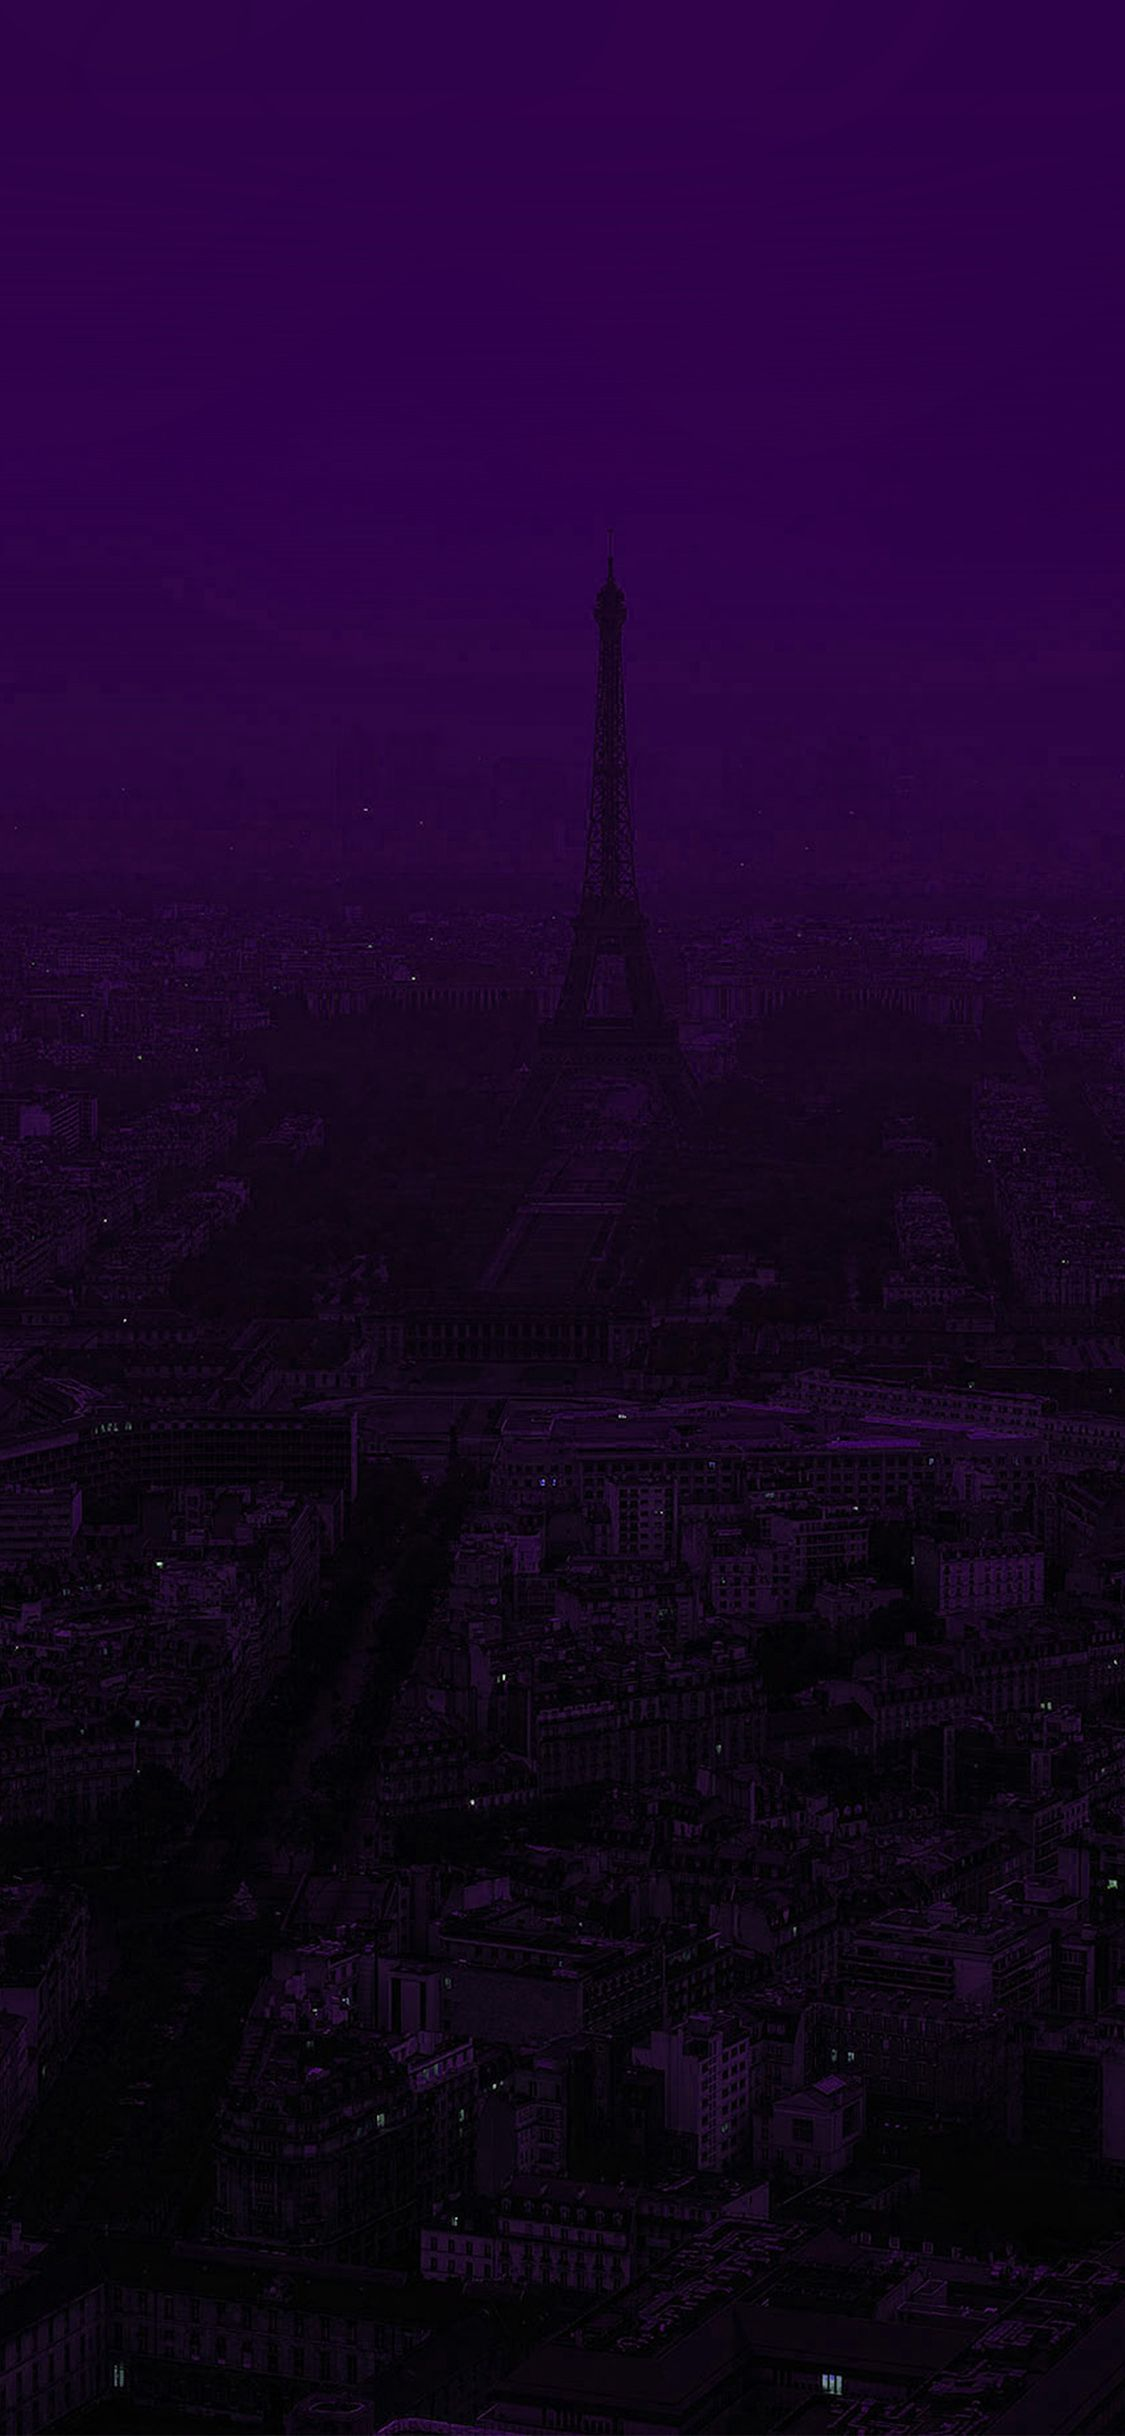 Iphonexpapers Com Apple Iphone Wallpaper Bb43 Paris Dark Purple City Illustration Art Dark Purple Wallpaper Dark Purple Aesthetic Purple City